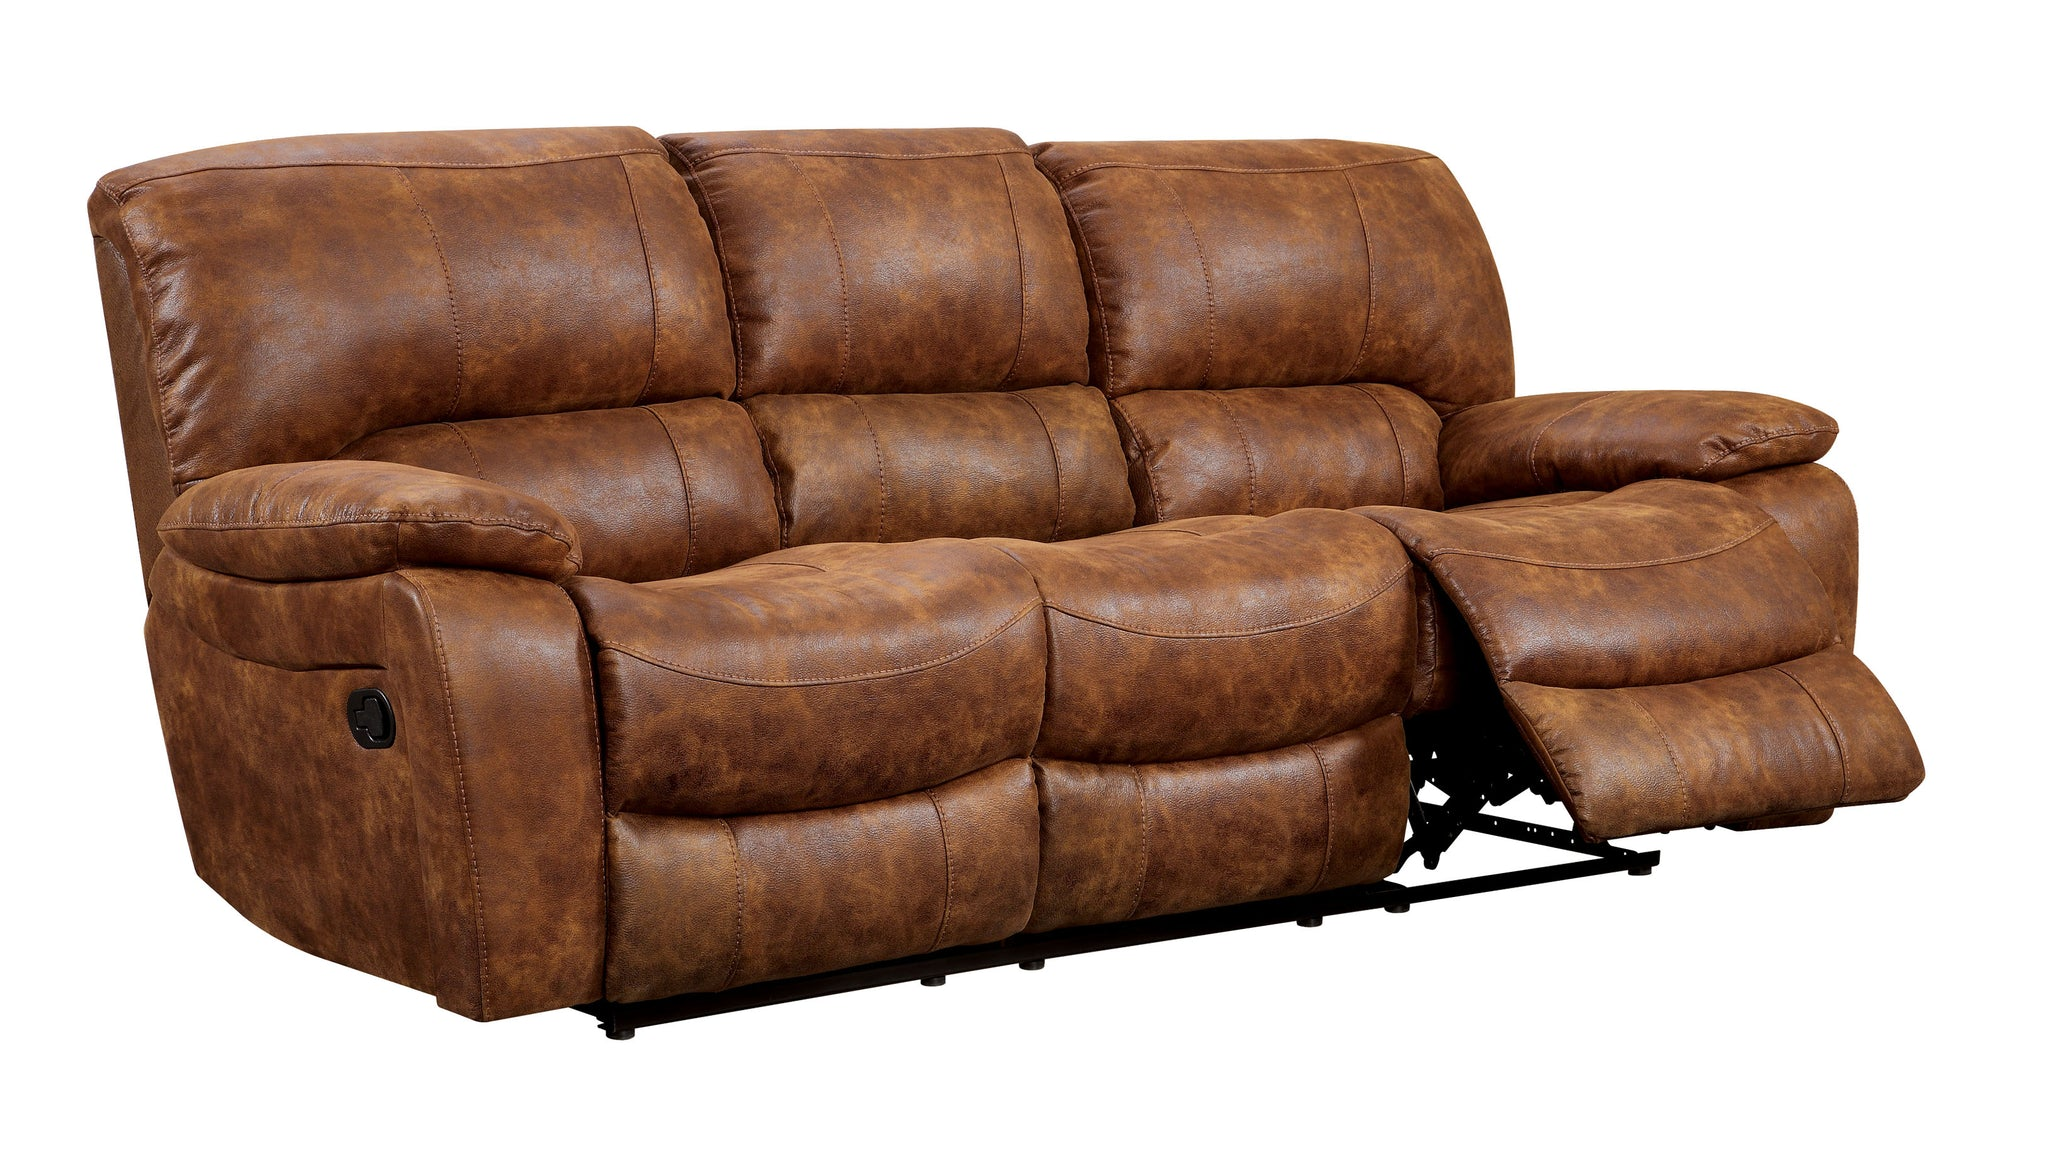 Mandalina Transitional Leatherette Sofa Recliner, Brown